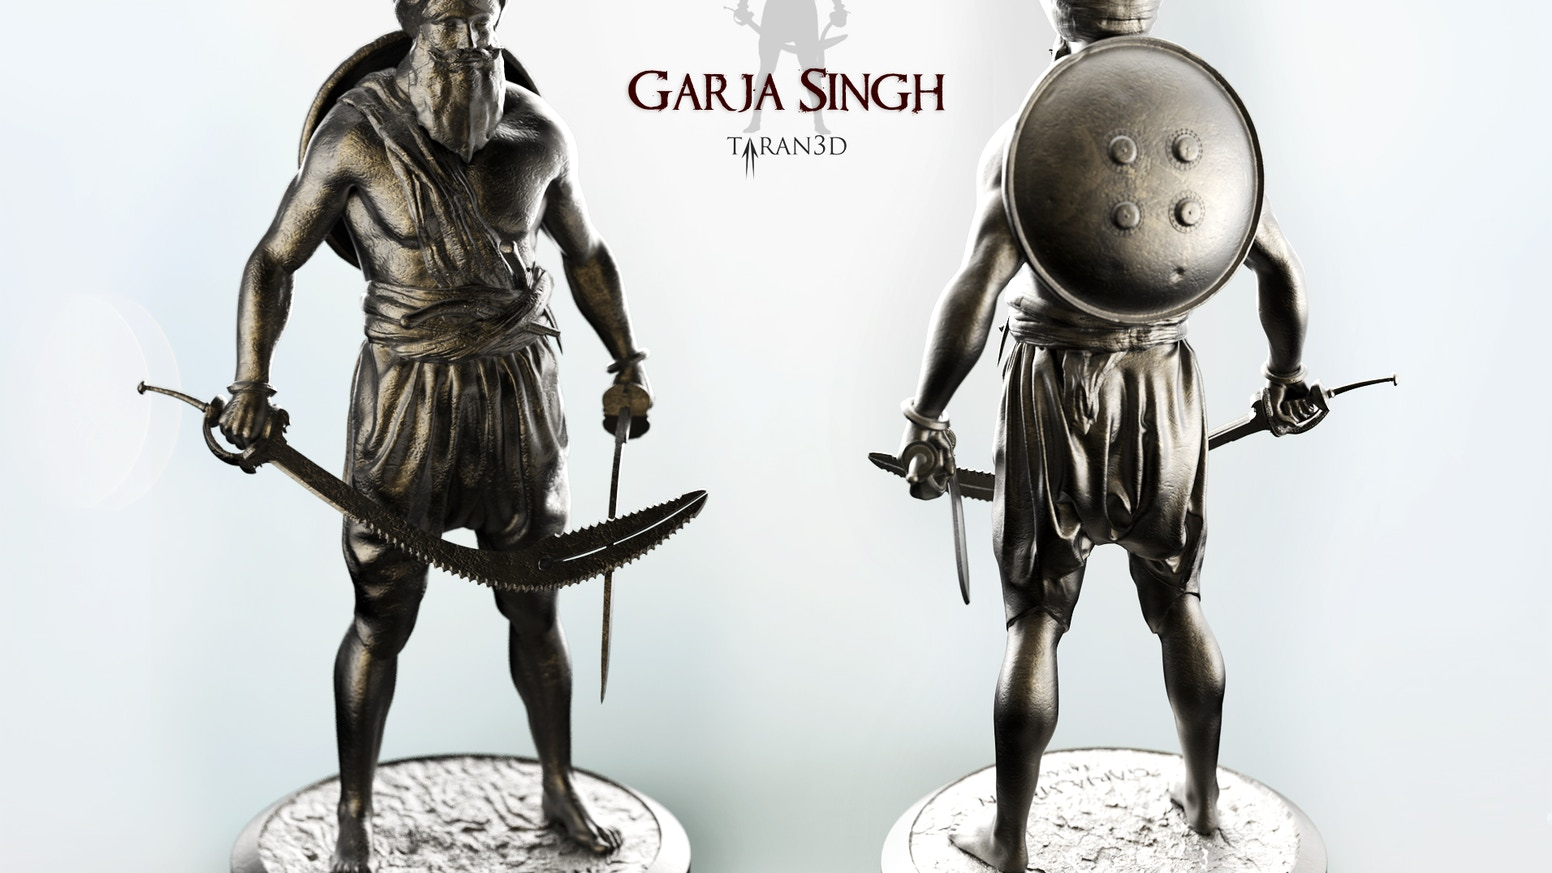 "Help me produce these 12"" (30cm) statues of famous 18th century Sikh warrior Garja Singh in cold cast bronze and get one for yourself"